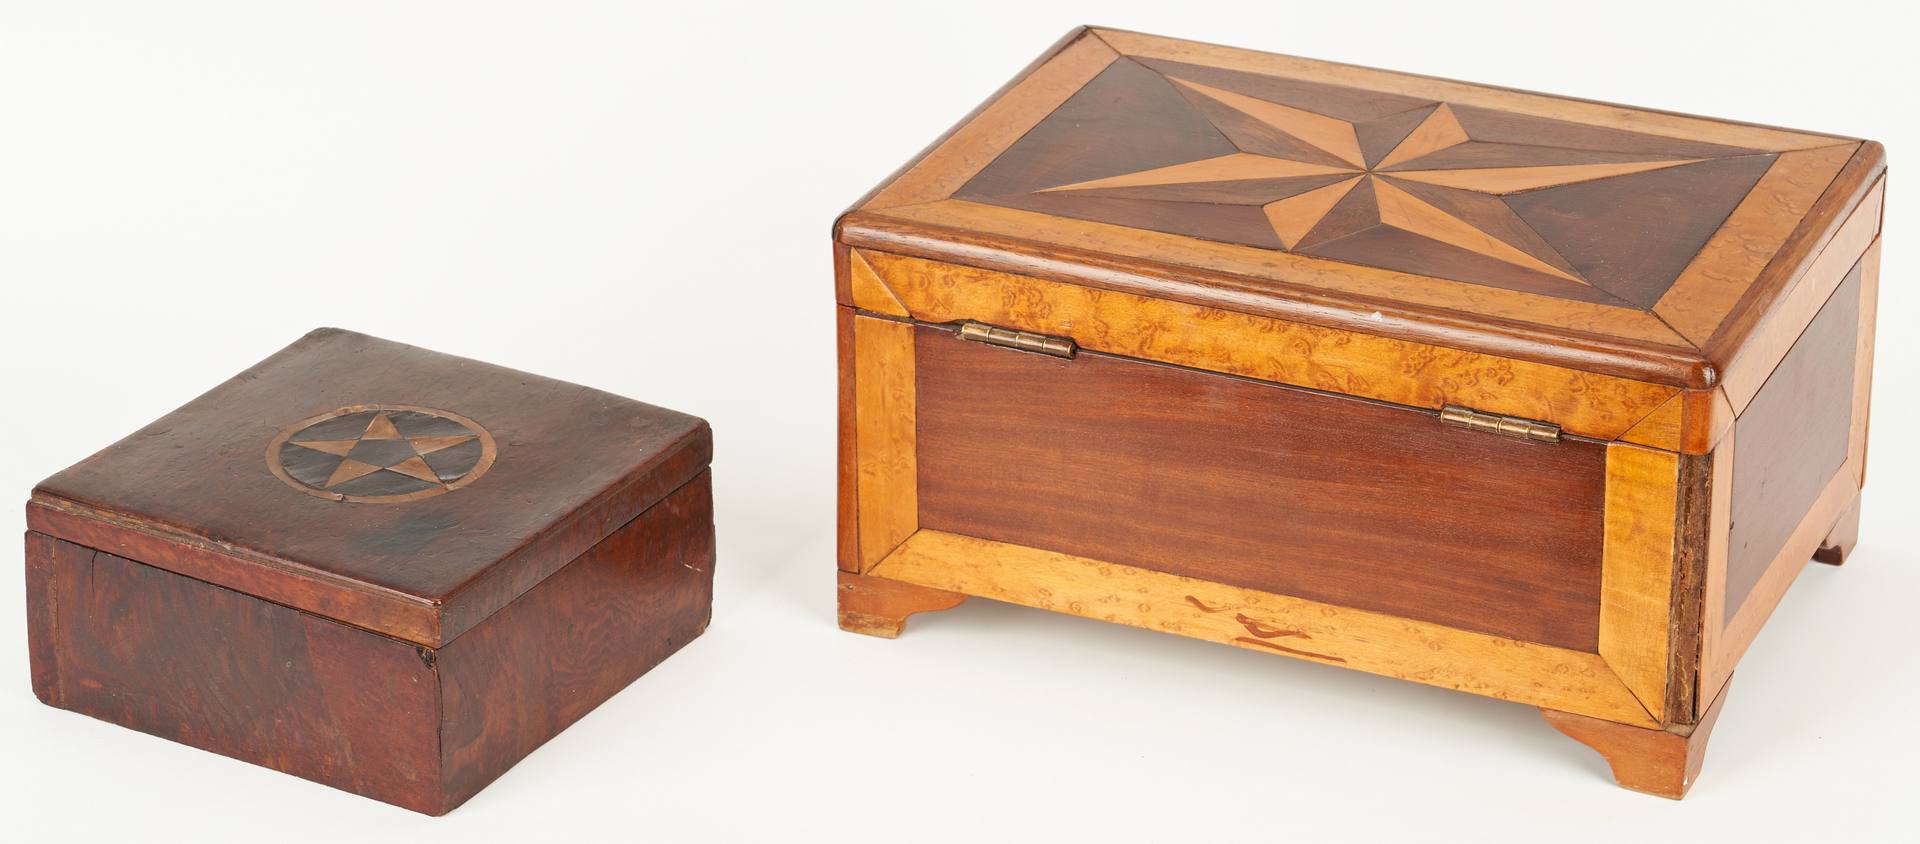 Lot 352: 3 Boxes with Inlaid Tops, incl. Lap Desk